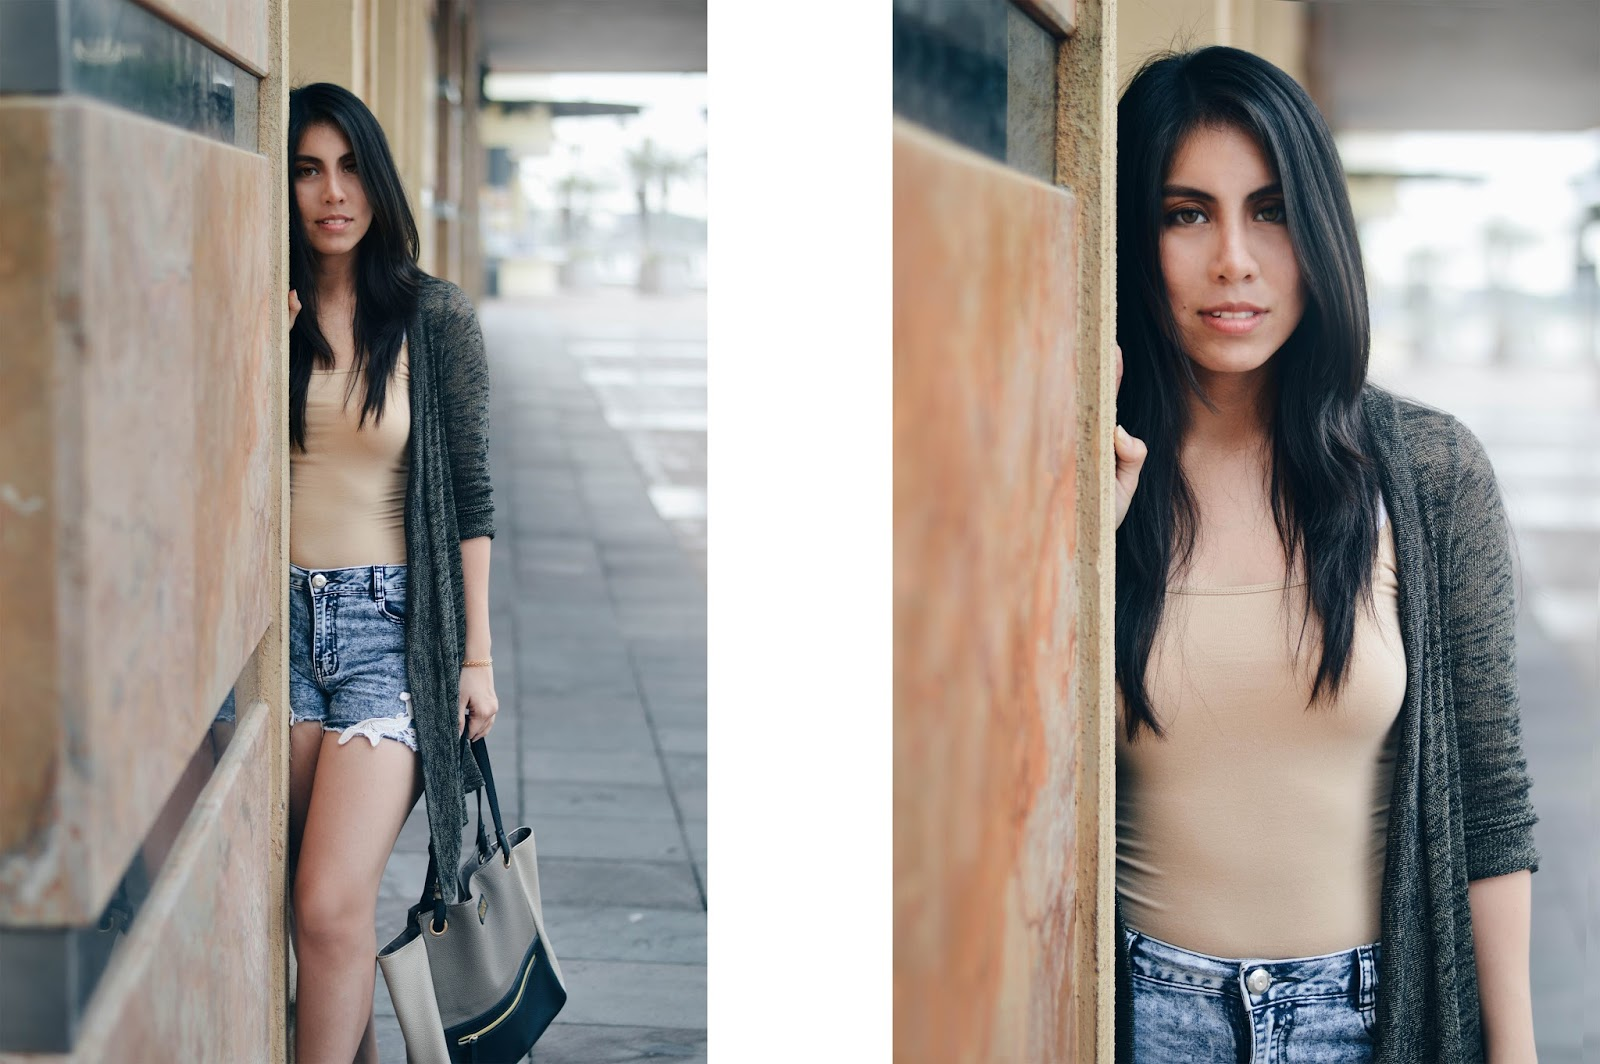 silvia-armas-just-chilling-blusa-nude-cardigan-denim-short-formal-high-heels-purse-handbag-tumblr-girl-top-style-fashion-blogger-ecuador